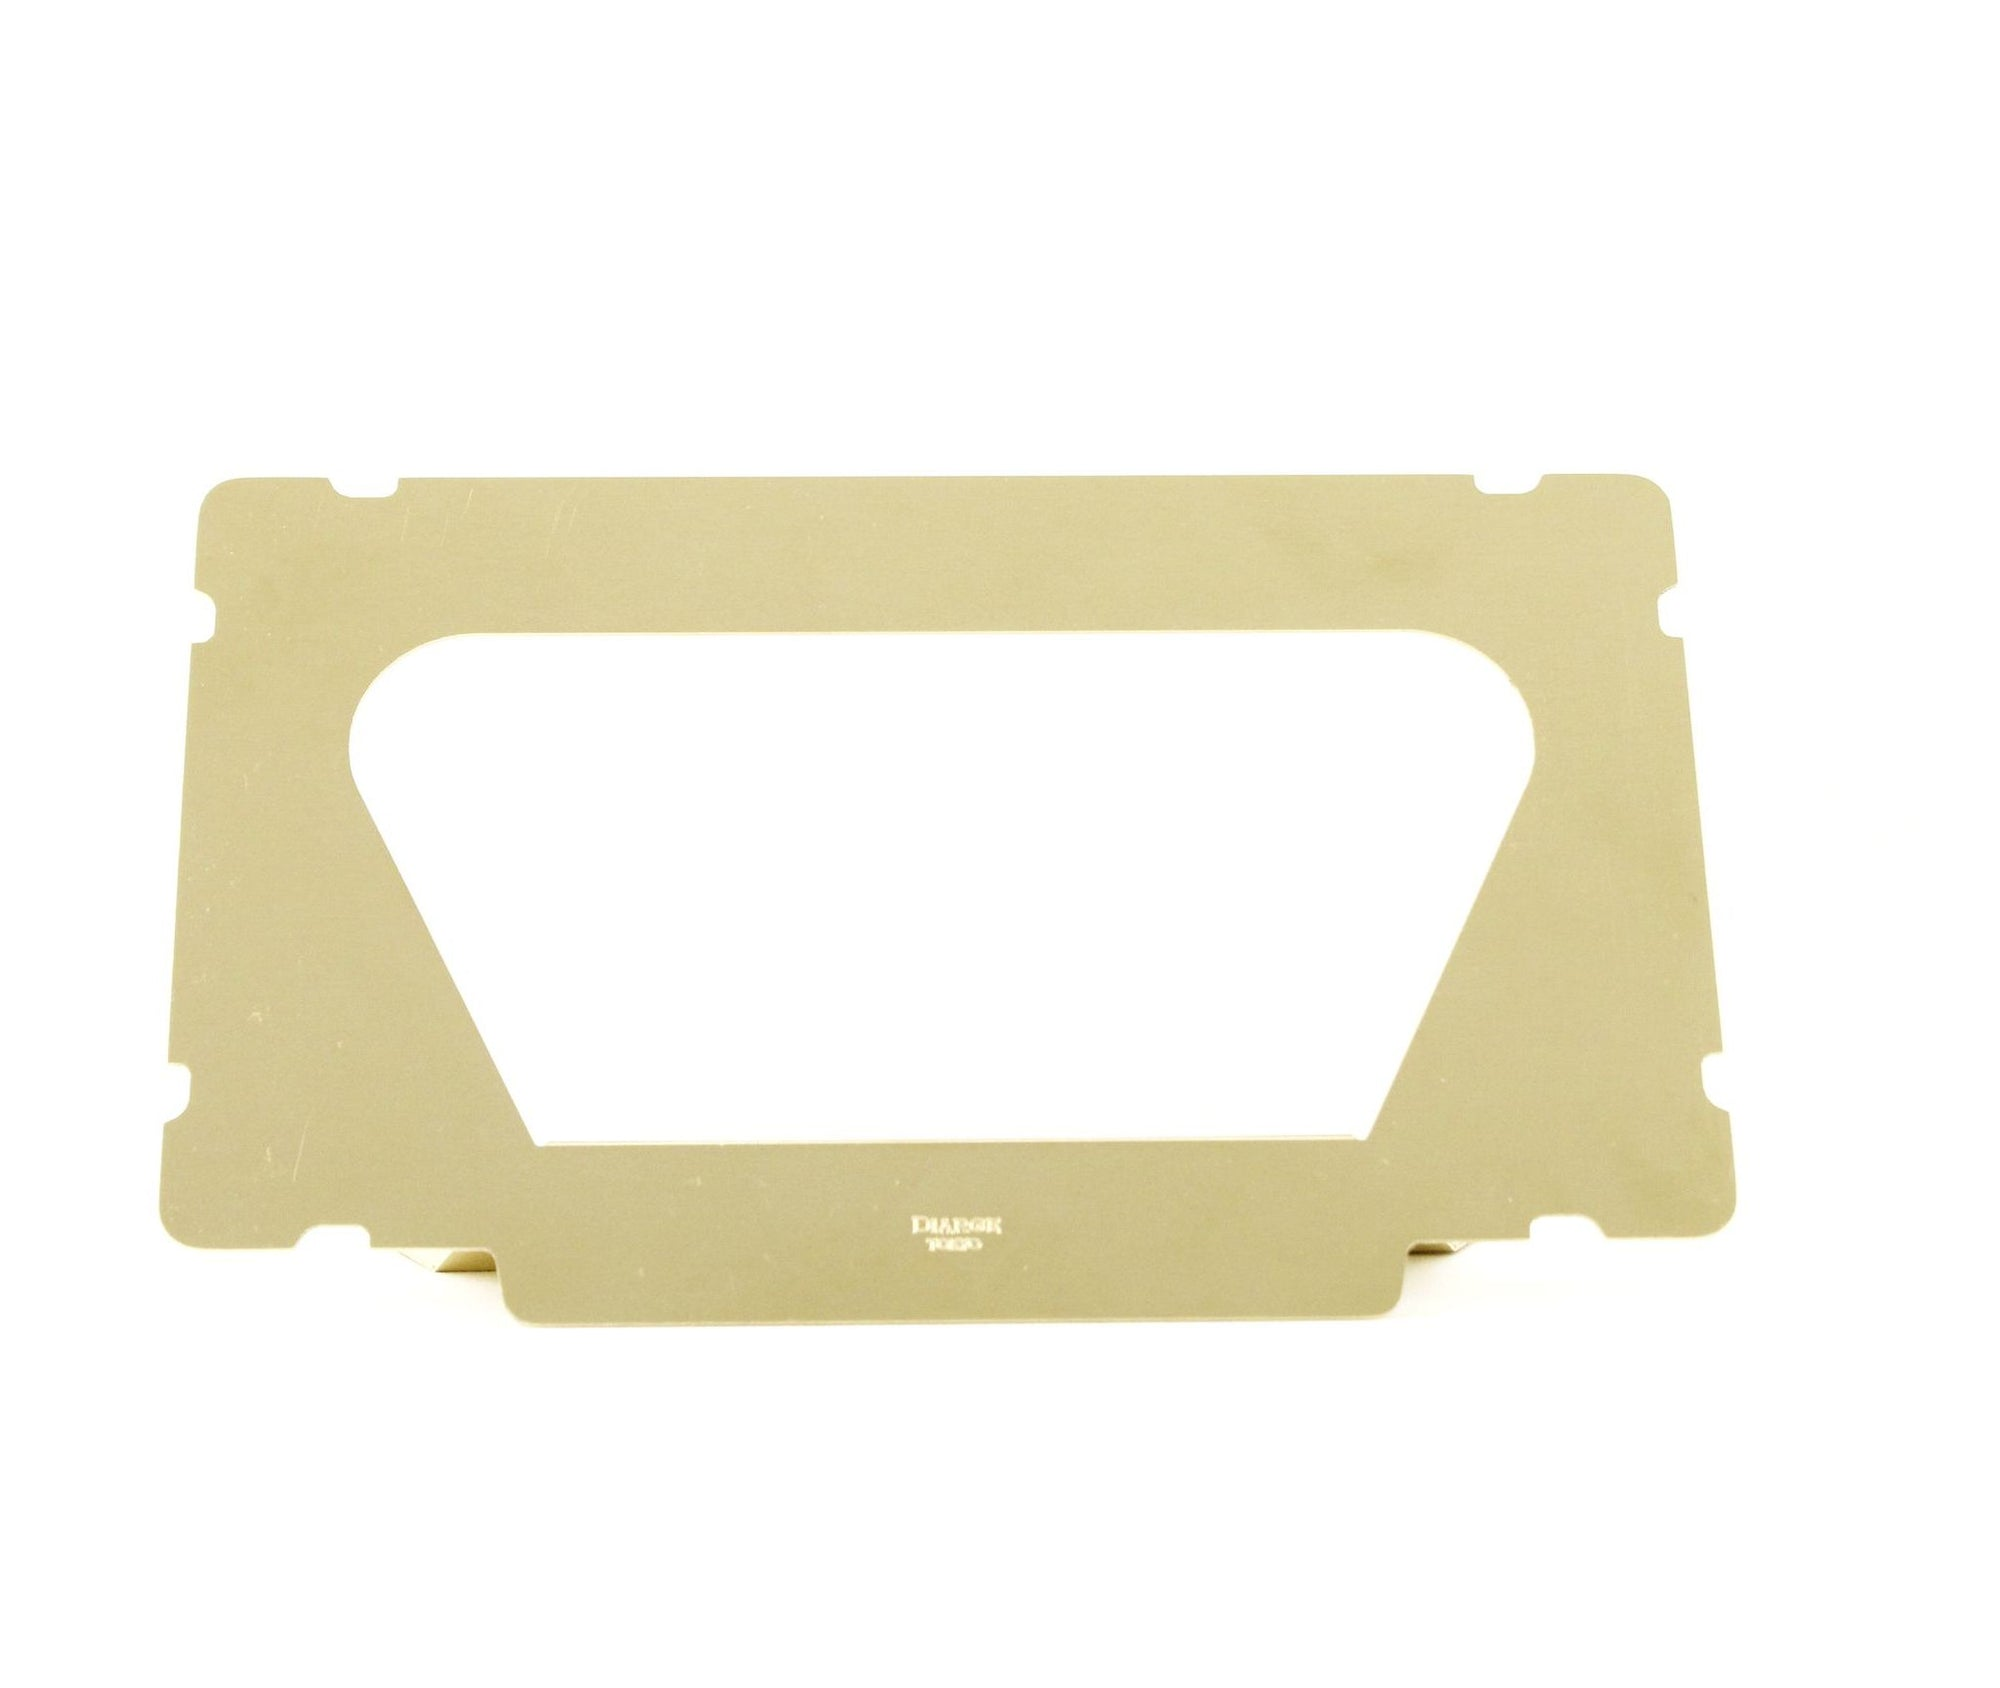 BRASS FASE MASK STAND 13910 GD